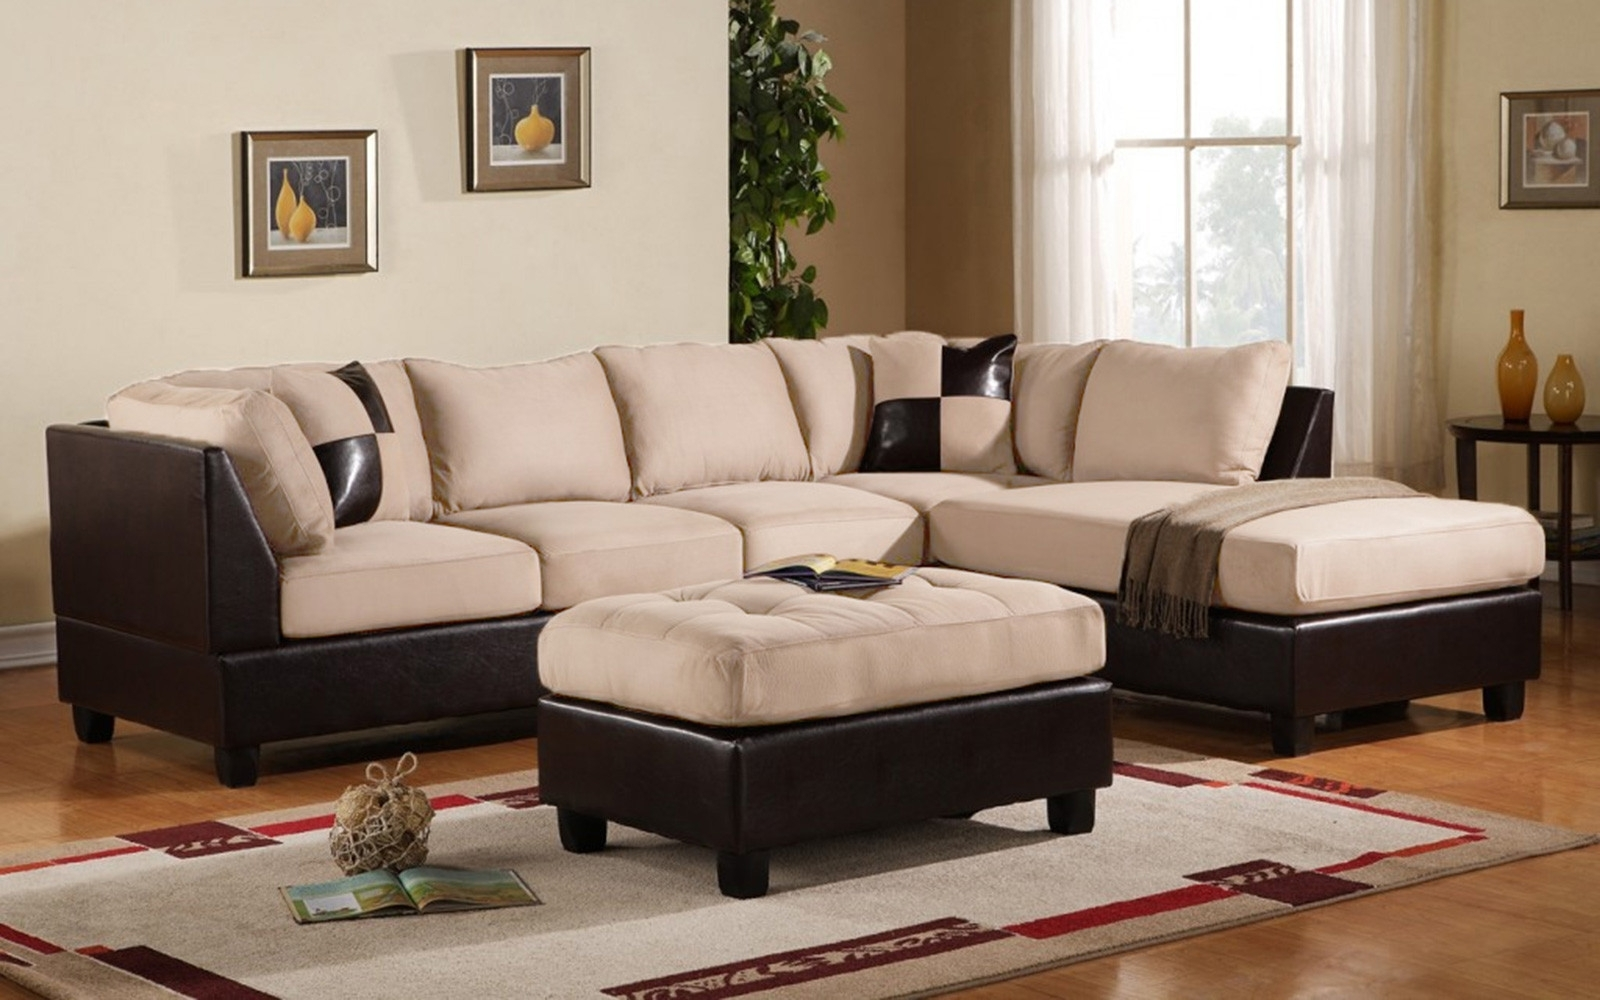 Preferred Modern Microfiber Sectional Sofas Within Faux Suede Sectional Sofa – Home And Textiles (View 11 of 15)